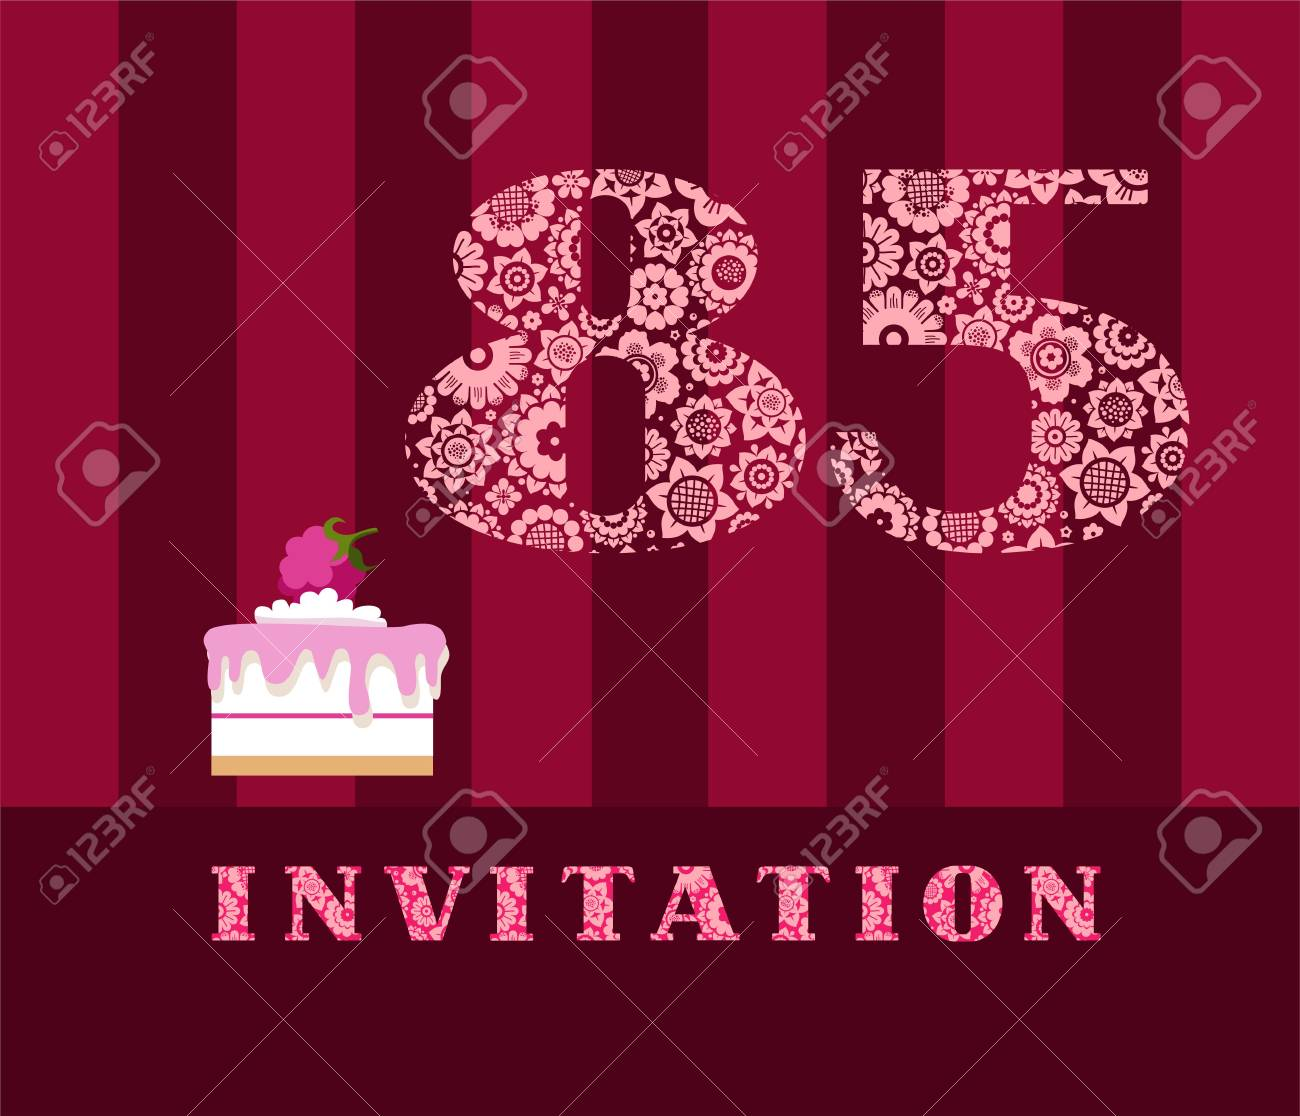 Party Invitation Design For 85th Birthday With Raspberry Cake Stock Vector